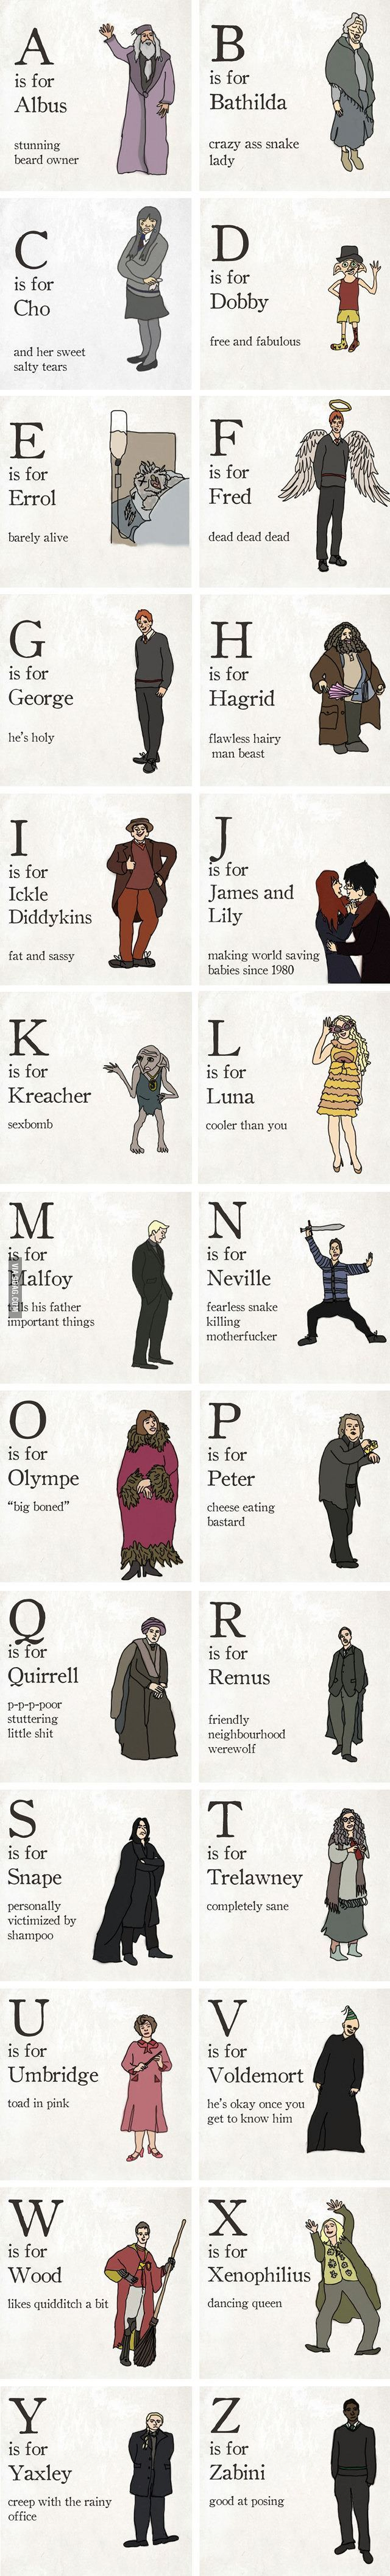 the illustrated alphabet of harry potter characters. Black Bedroom Furniture Sets. Home Design Ideas